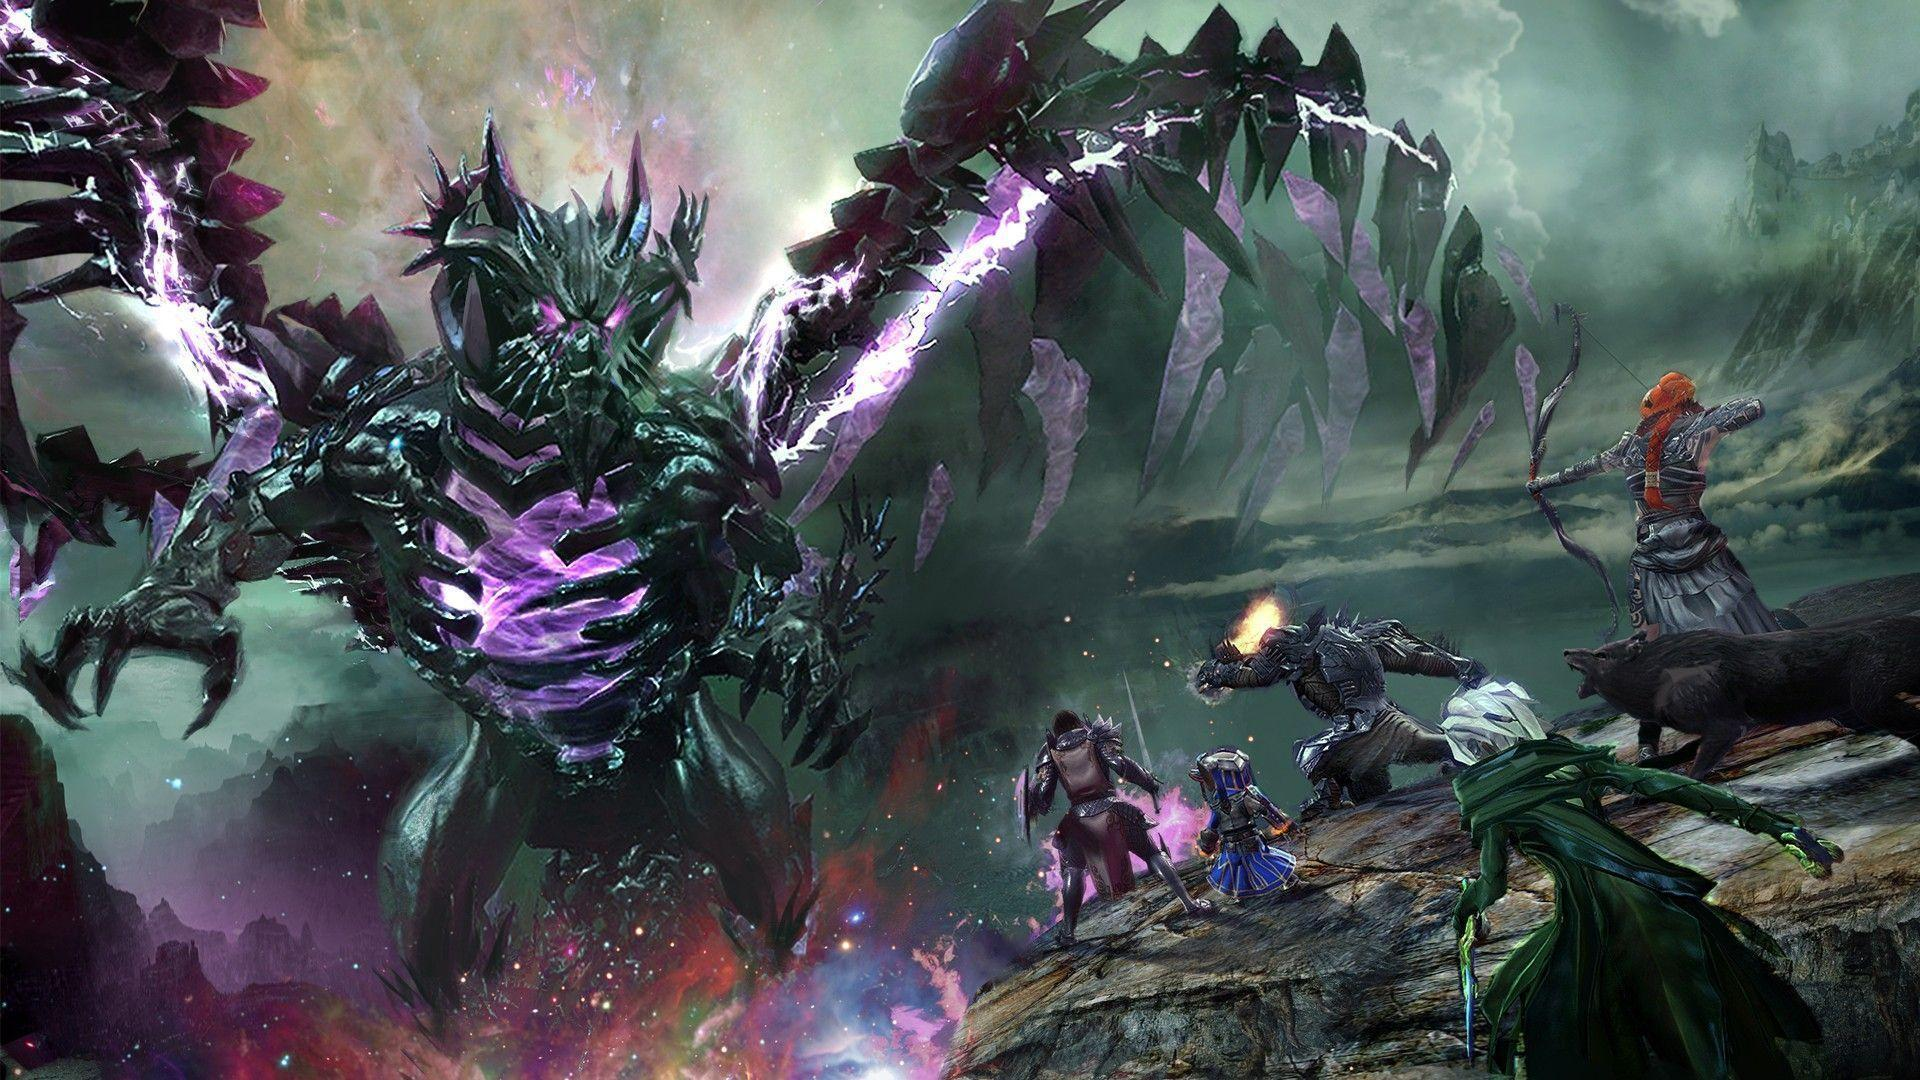 Free Hd Animated Wallpapers For Windows 7 Guild Wars 2 Wallpapers 1920x1080 Wallpaper Cave